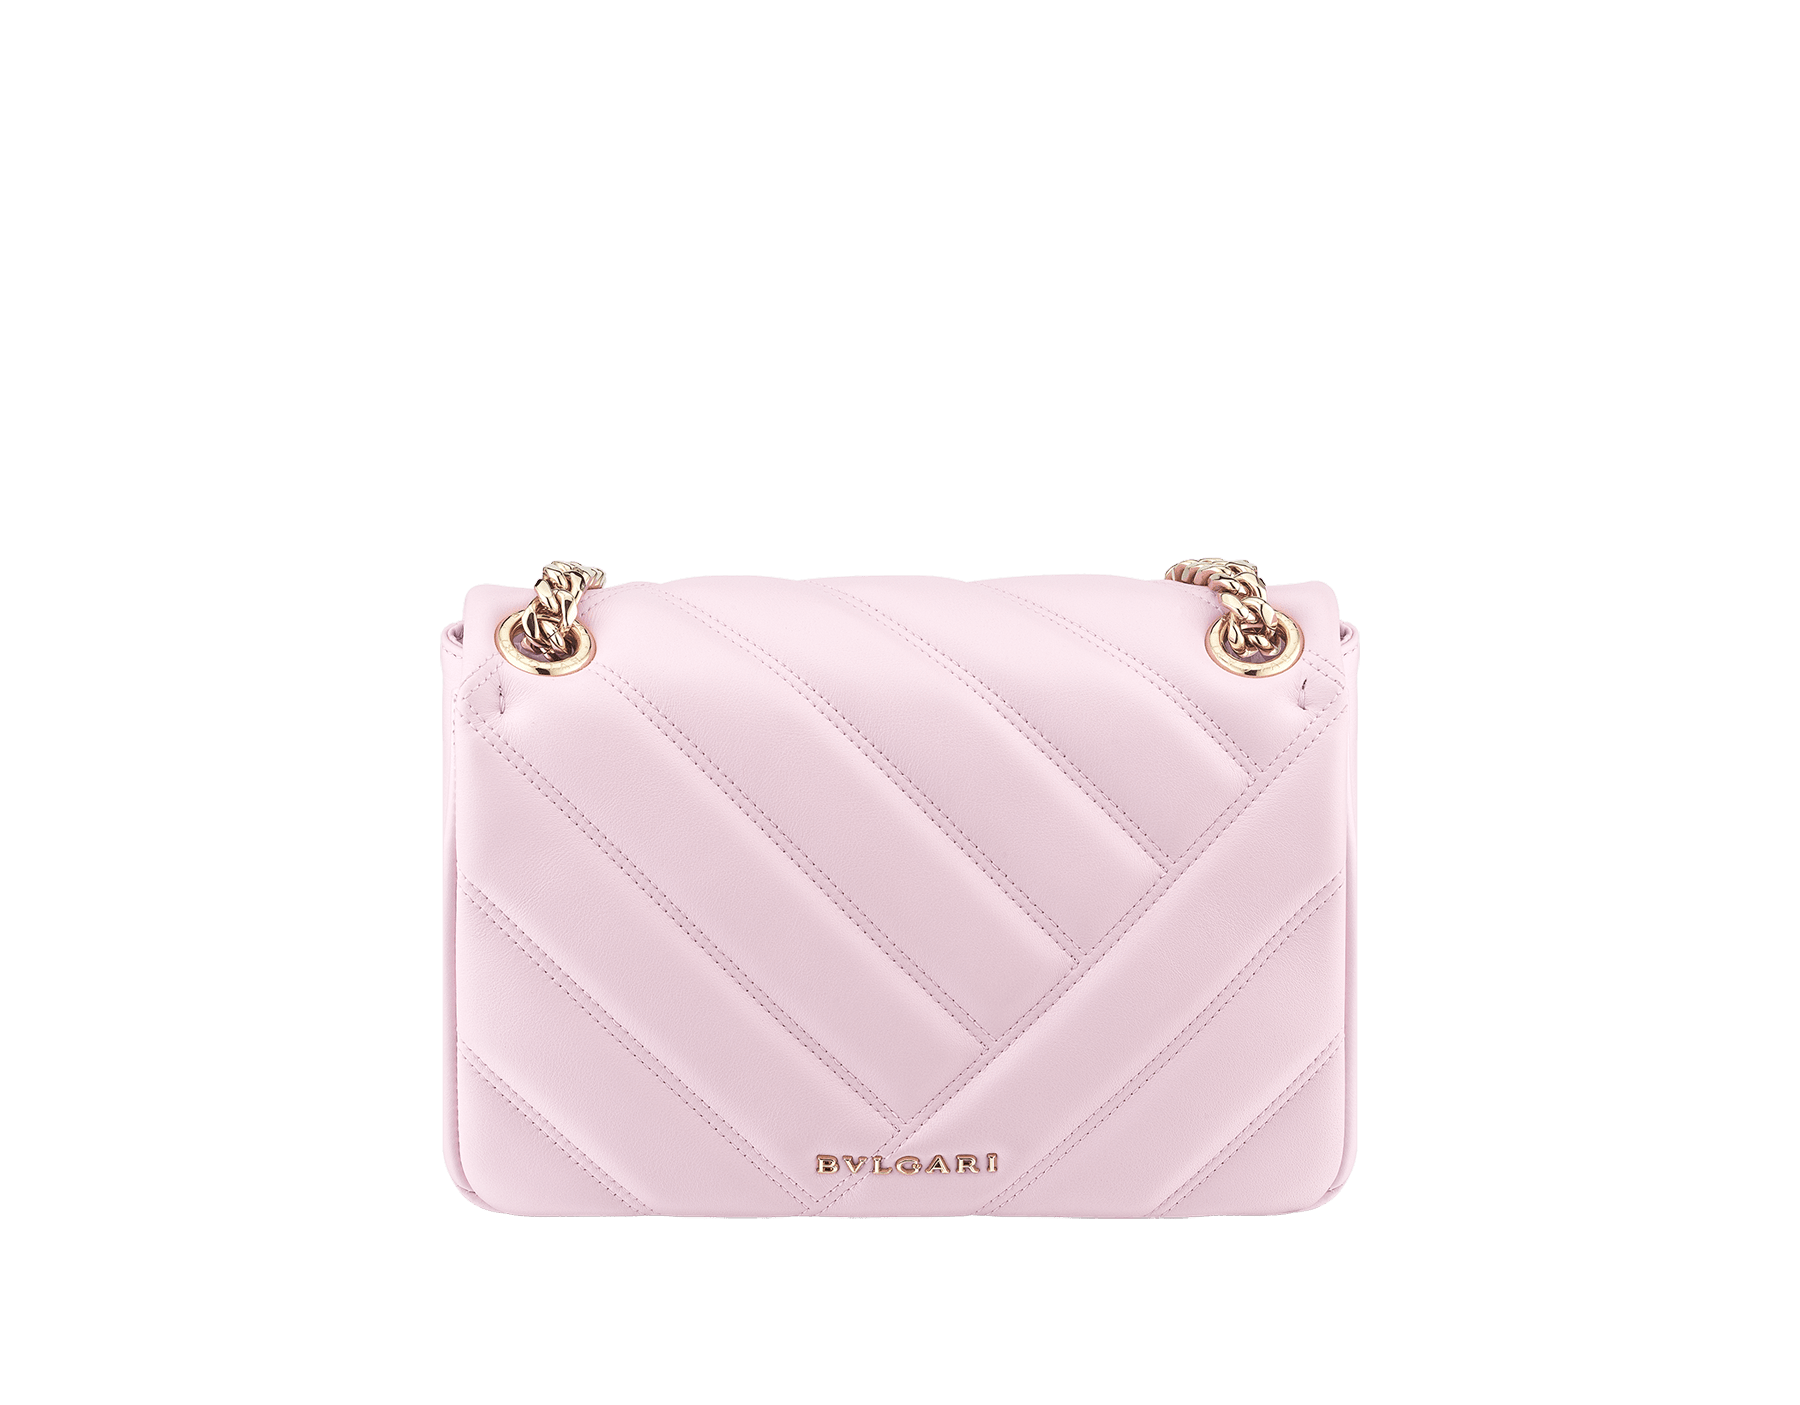 Serpenti Cabochon shoulder bag in soft matelassé rosa di francia nappa leather, with a graphic motif and rosa di francia calf leather. Brass light gold plated seductive snakehead closure in matt rosa di francia, shiny rosa di francia enamel and black onyx eyes. 288720 image 3